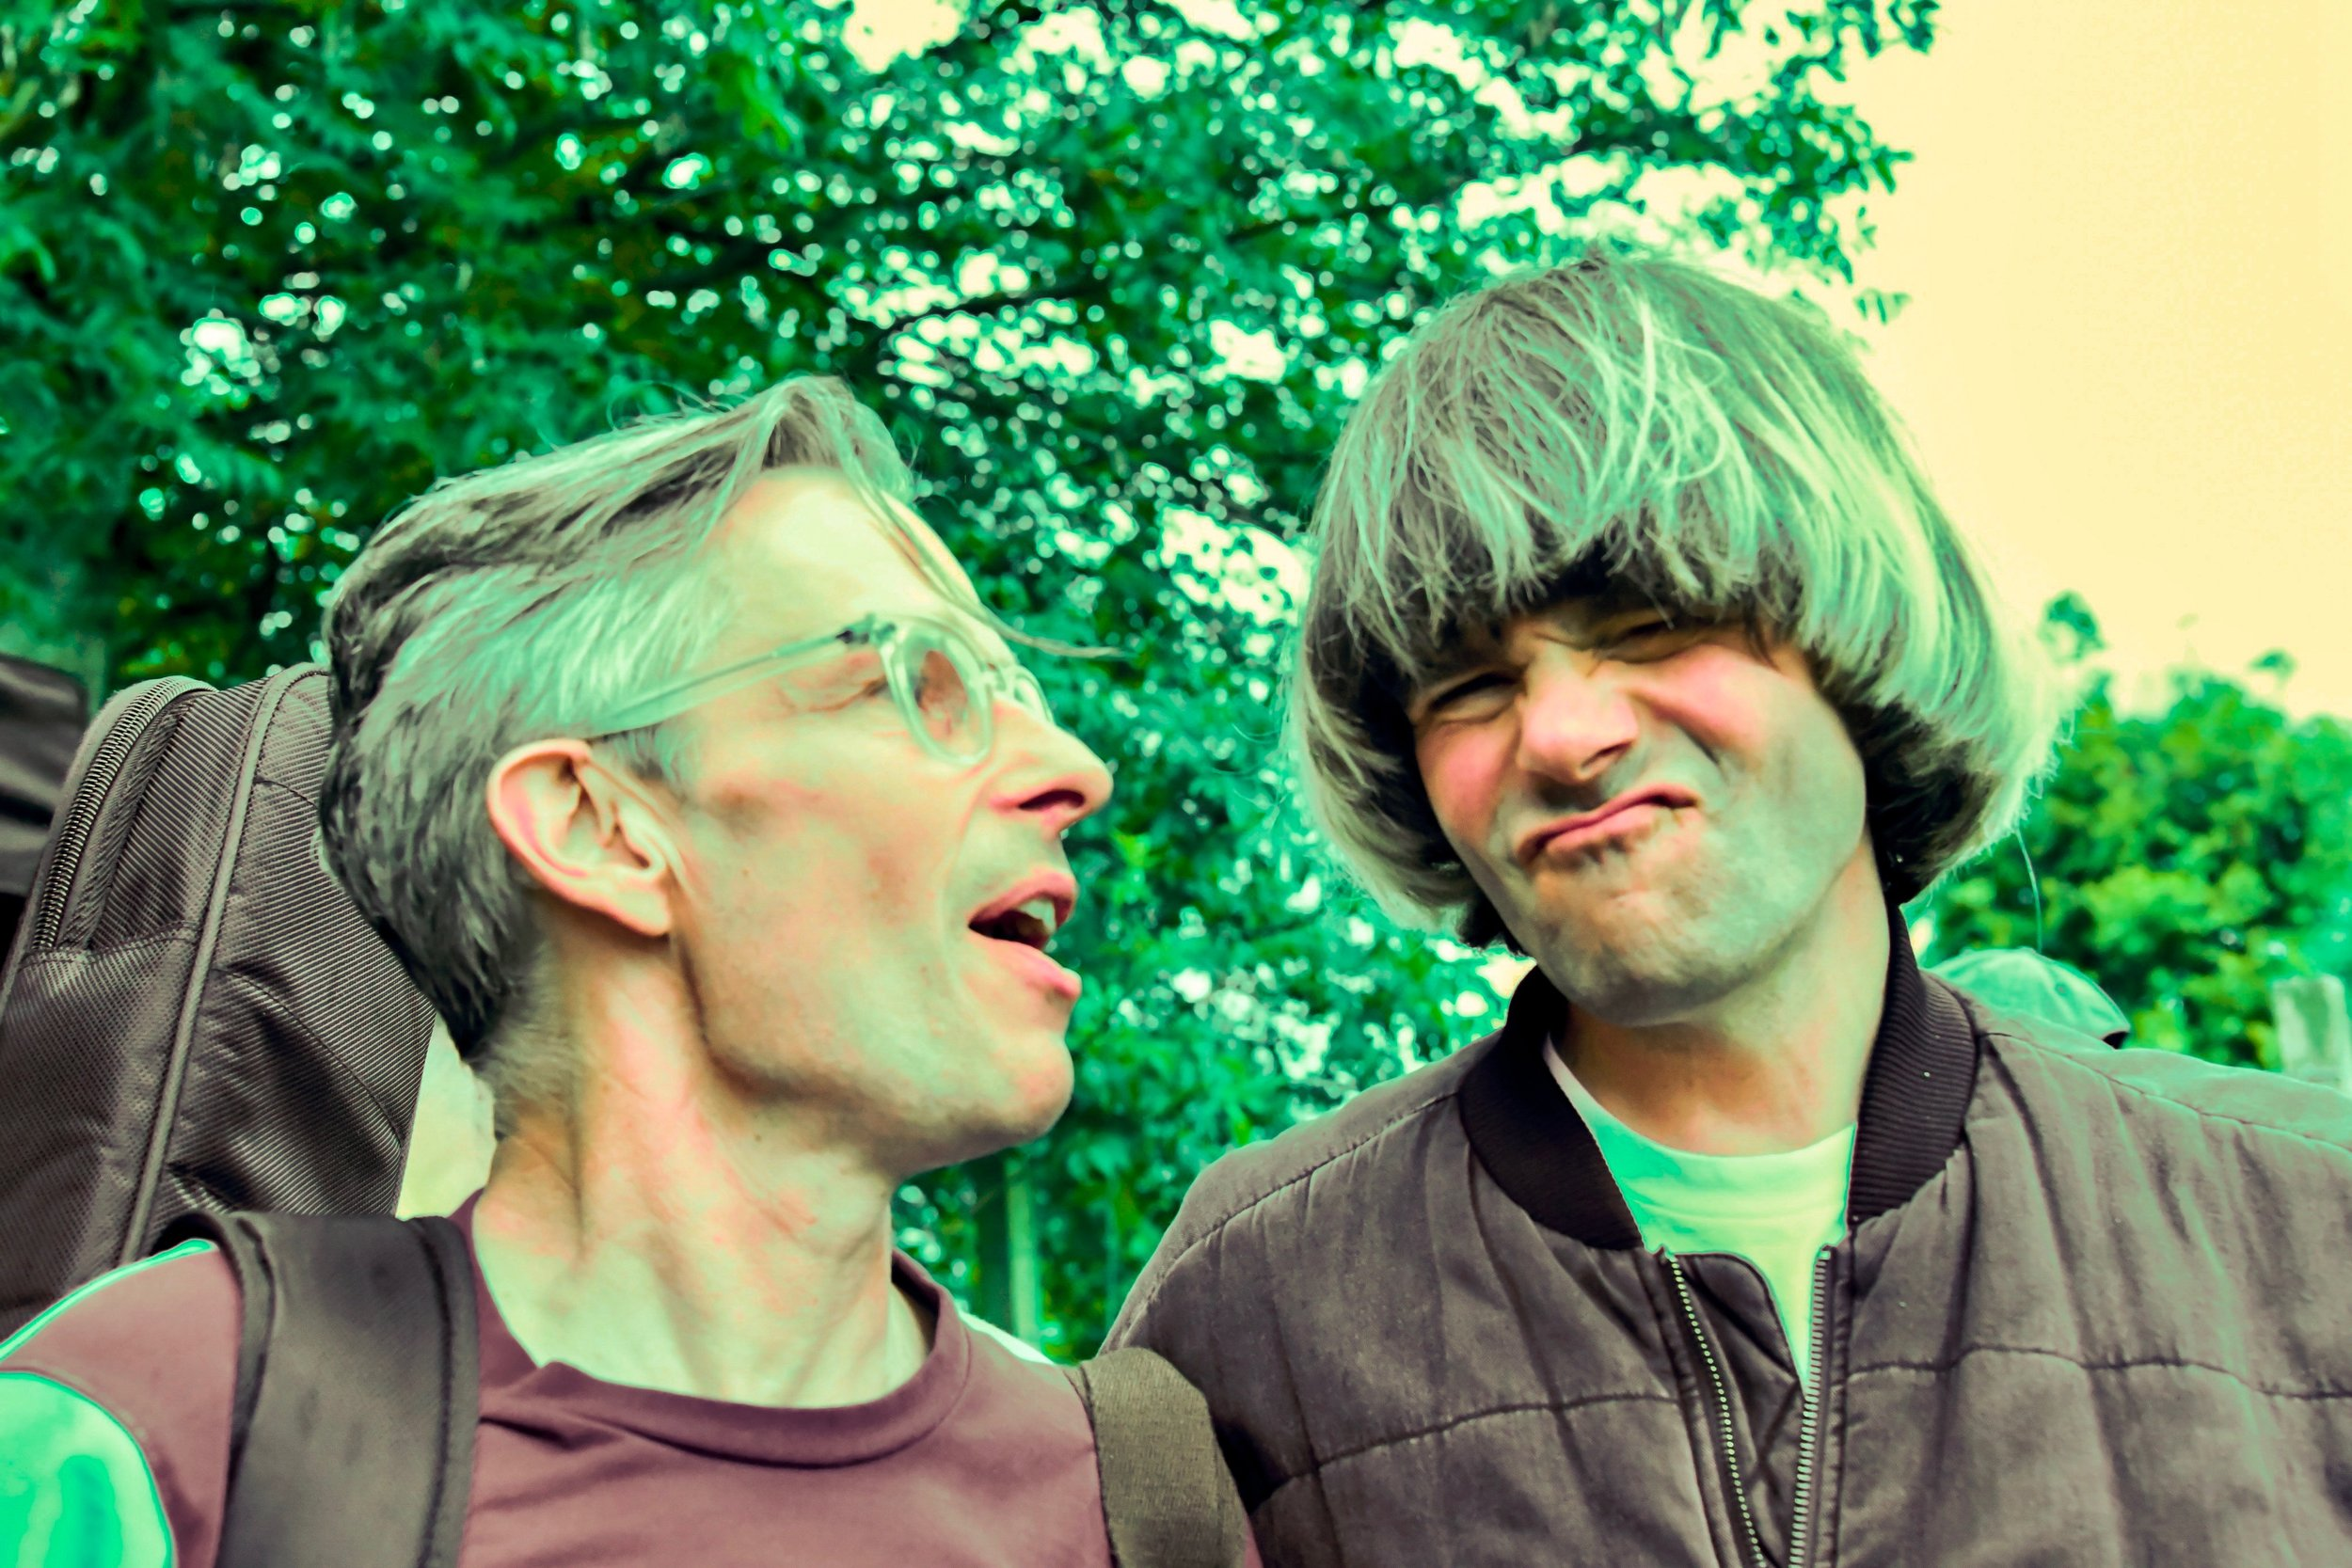 Pete Astor and Tim Burgess at Tim Peaks Diner, 2019. Photo: Cameron Murray